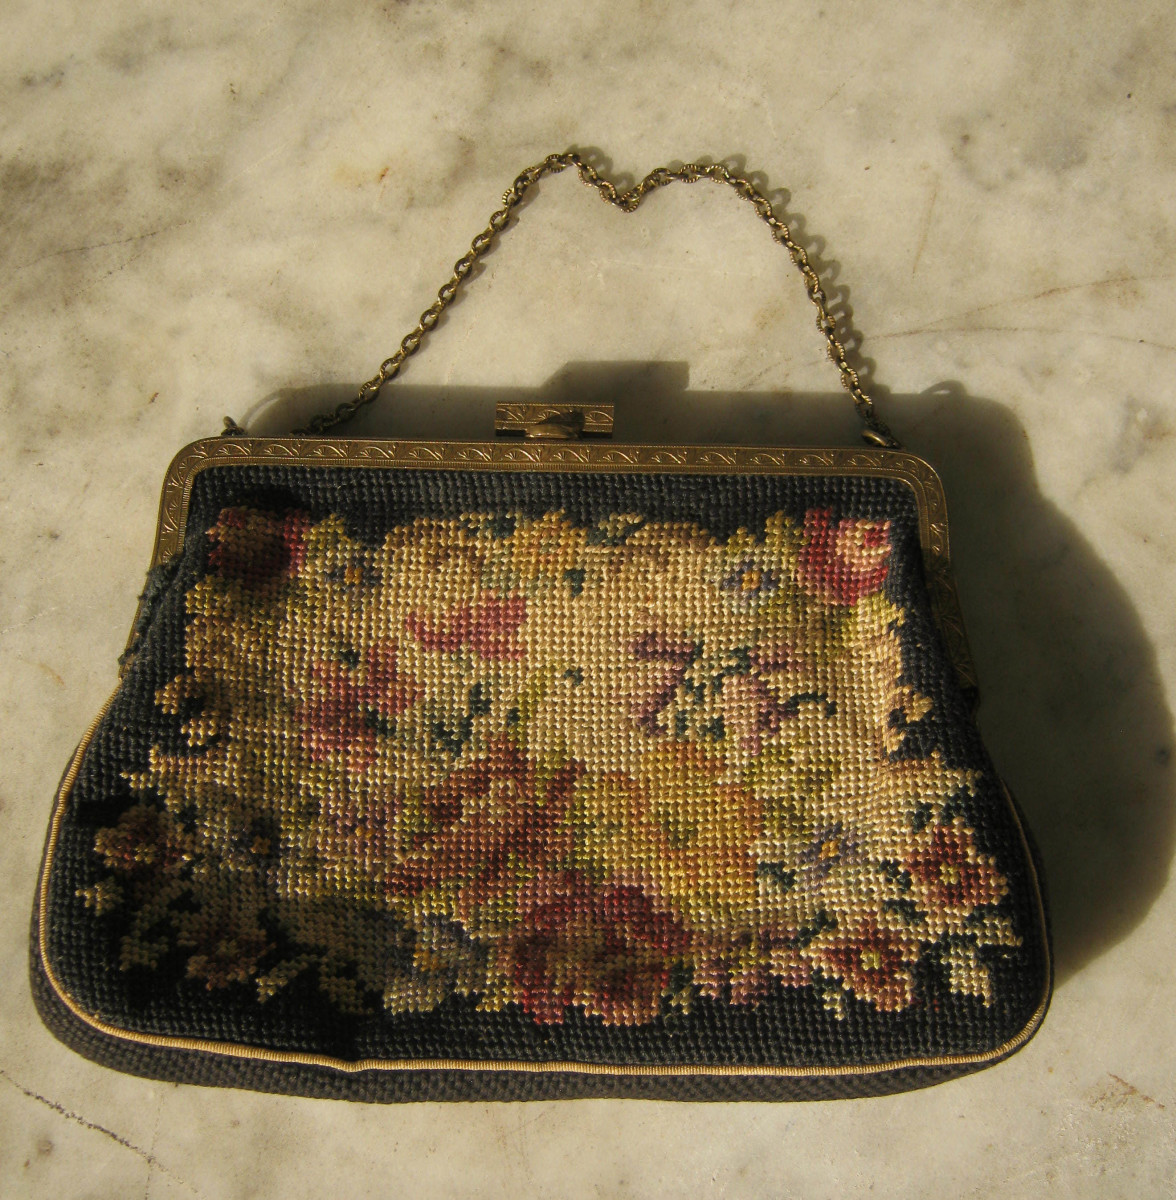 Fashion History: Purses and Handbags